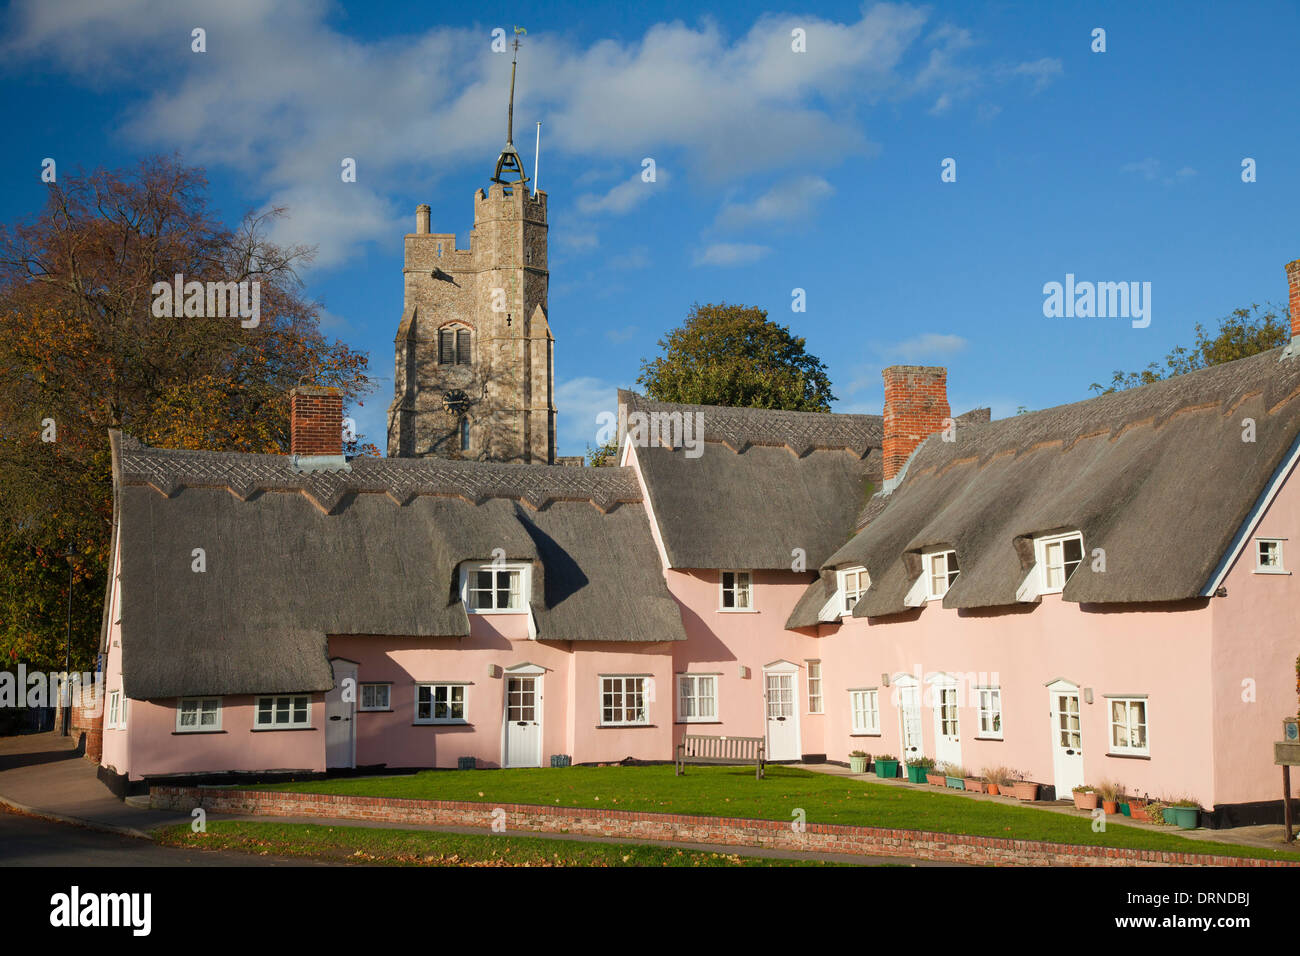 The Pink Cottages beneath St Mary's church, Cavendish, Suffolk, England. Stock Photo